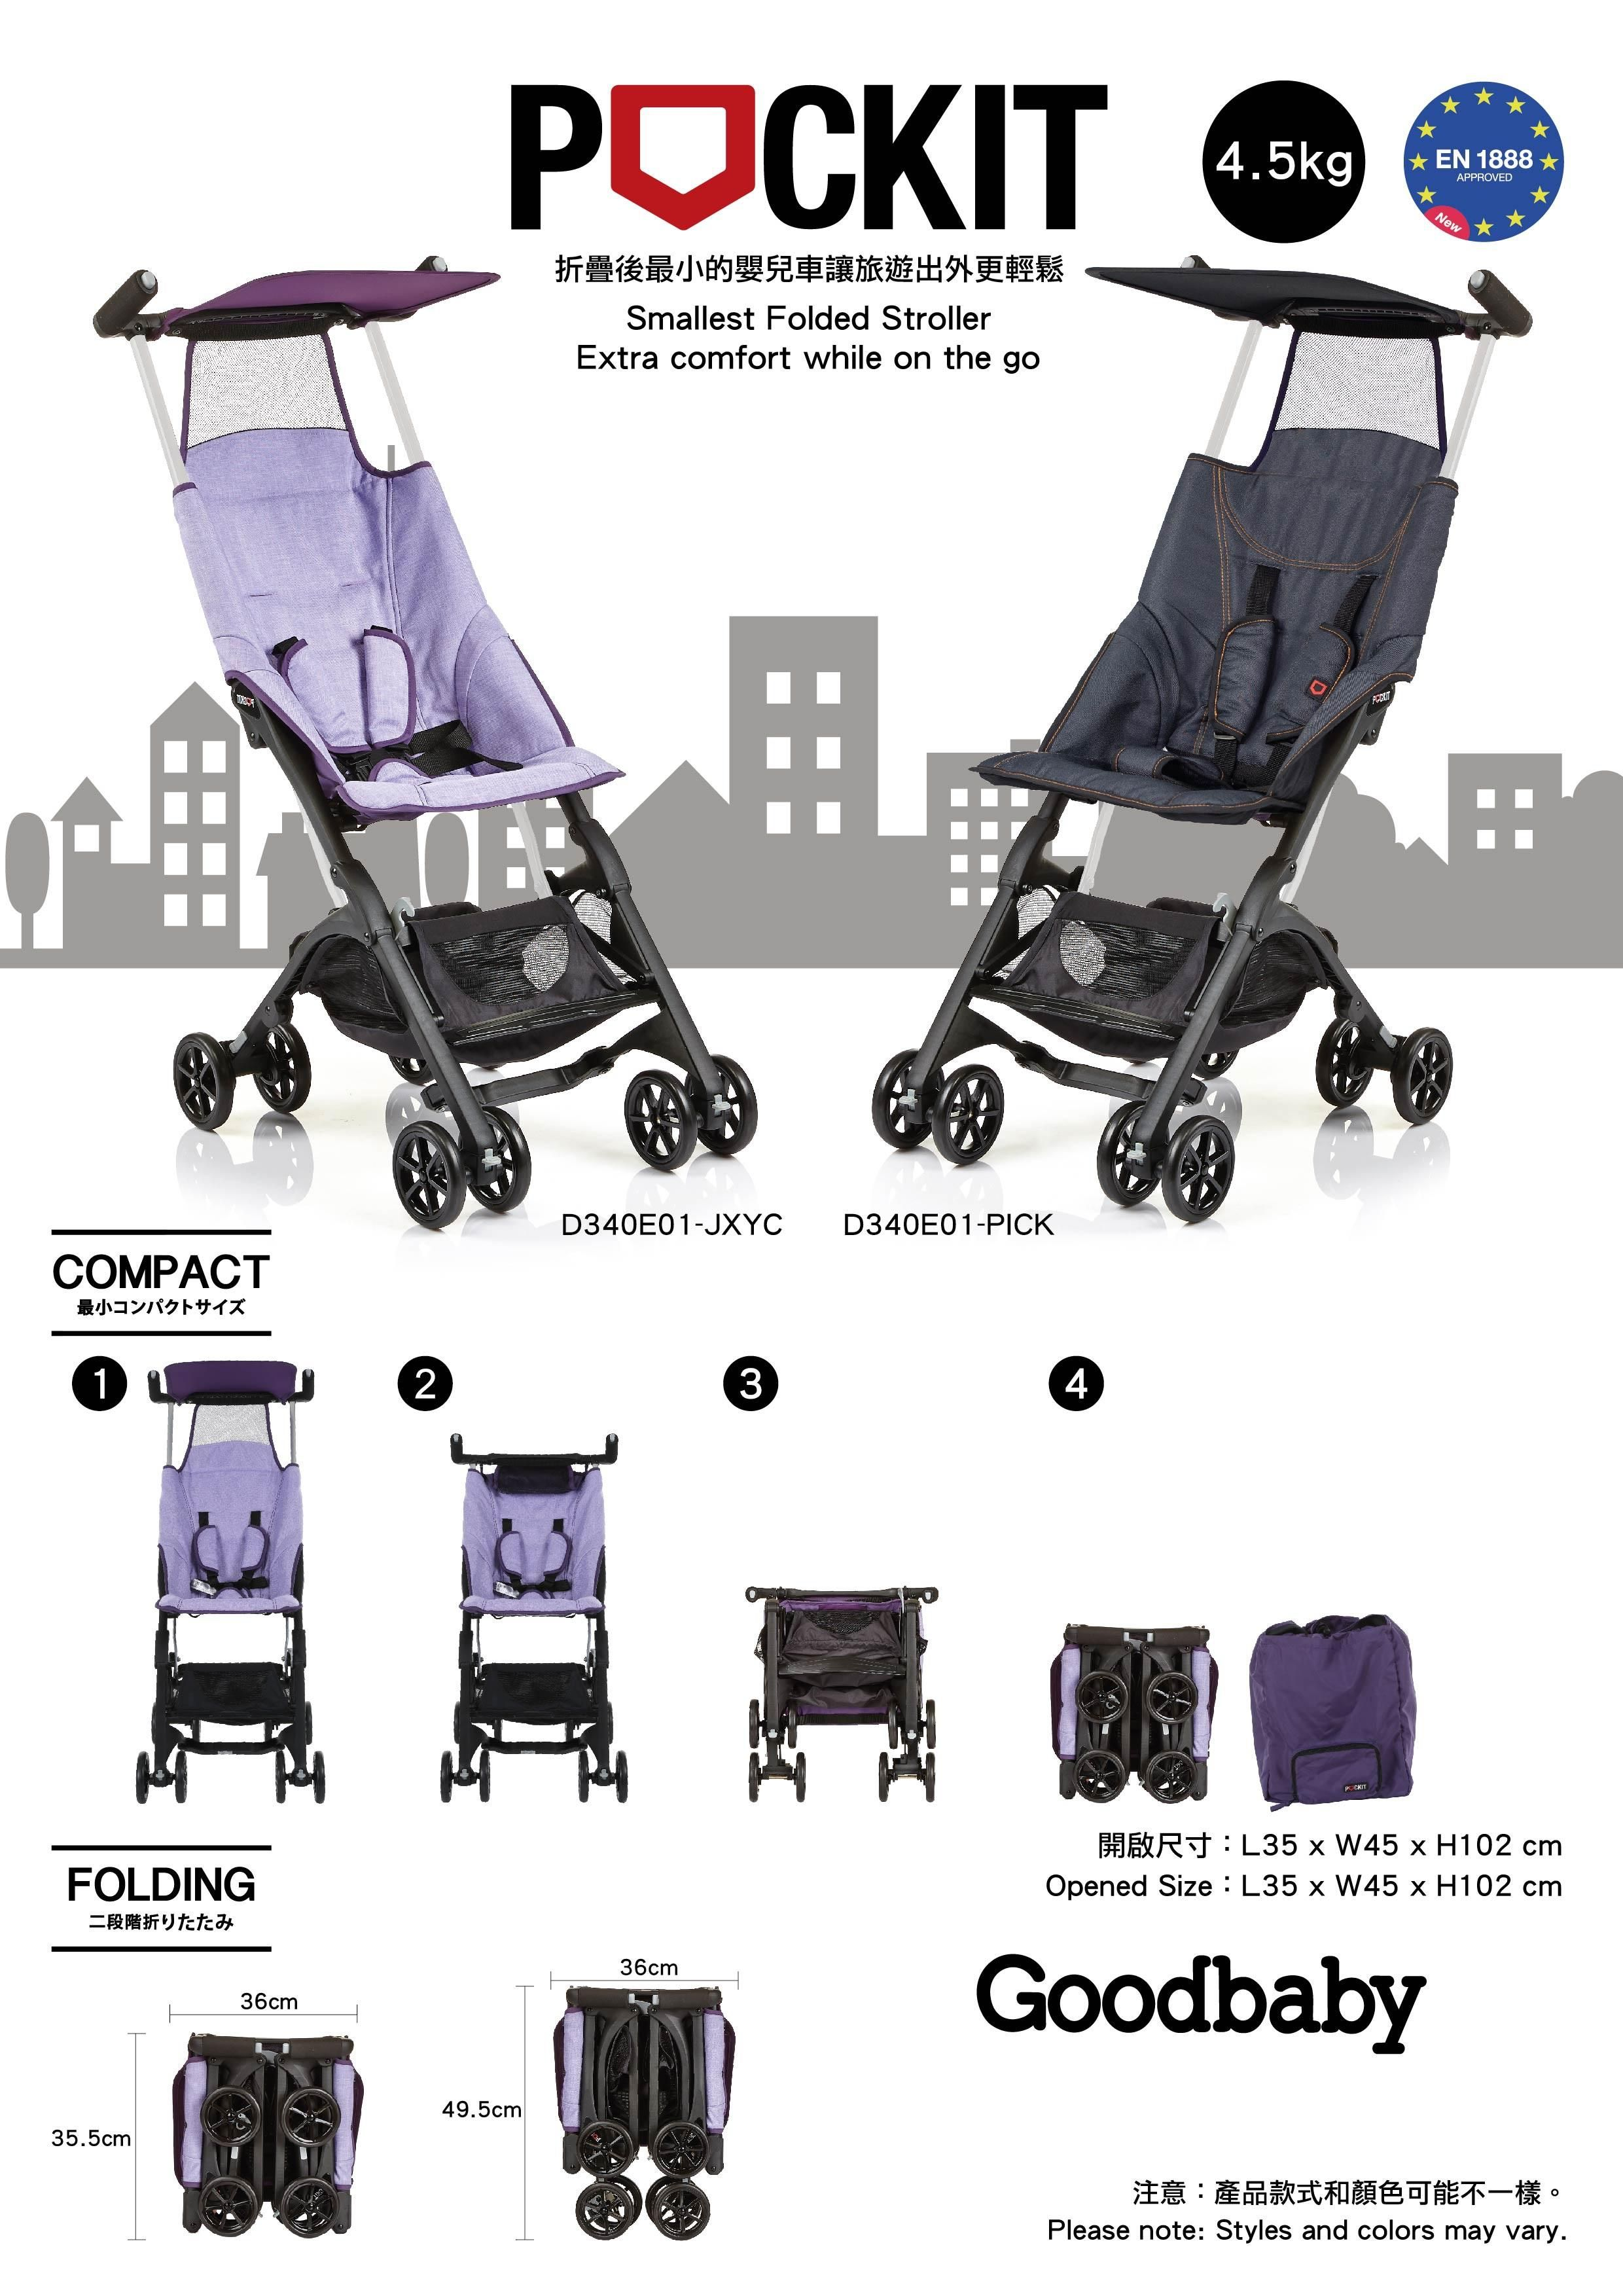 Bugaboo Stroller How To Fold Pockit Stroller The Smallest Folded Stroller Pockit Can